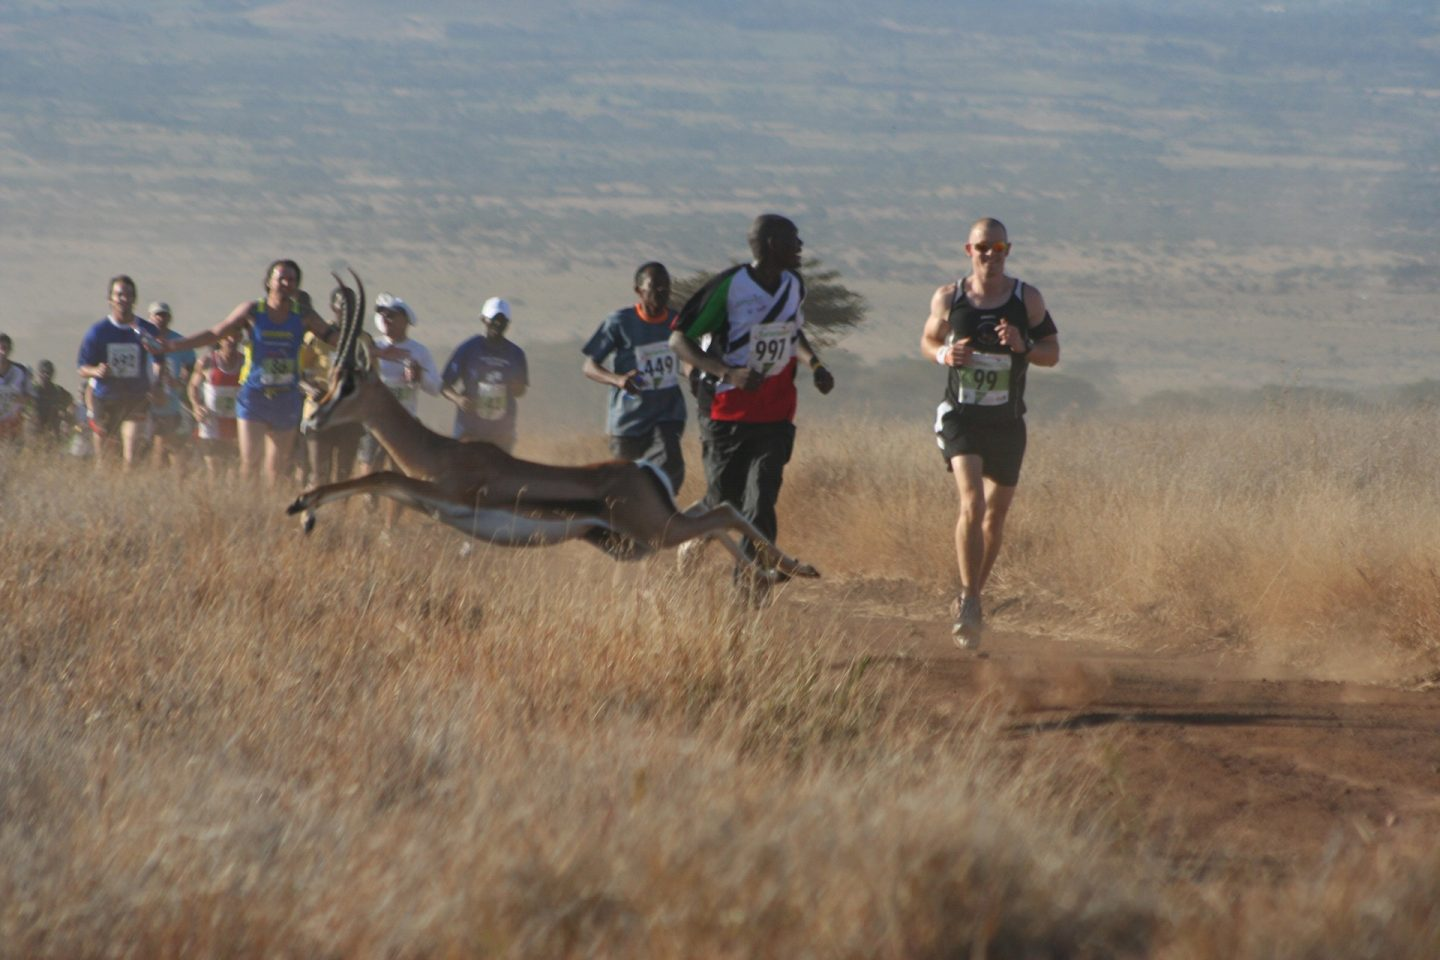 Safaricom Marathon Runners and Impala.  With Thanks to Emma Craig